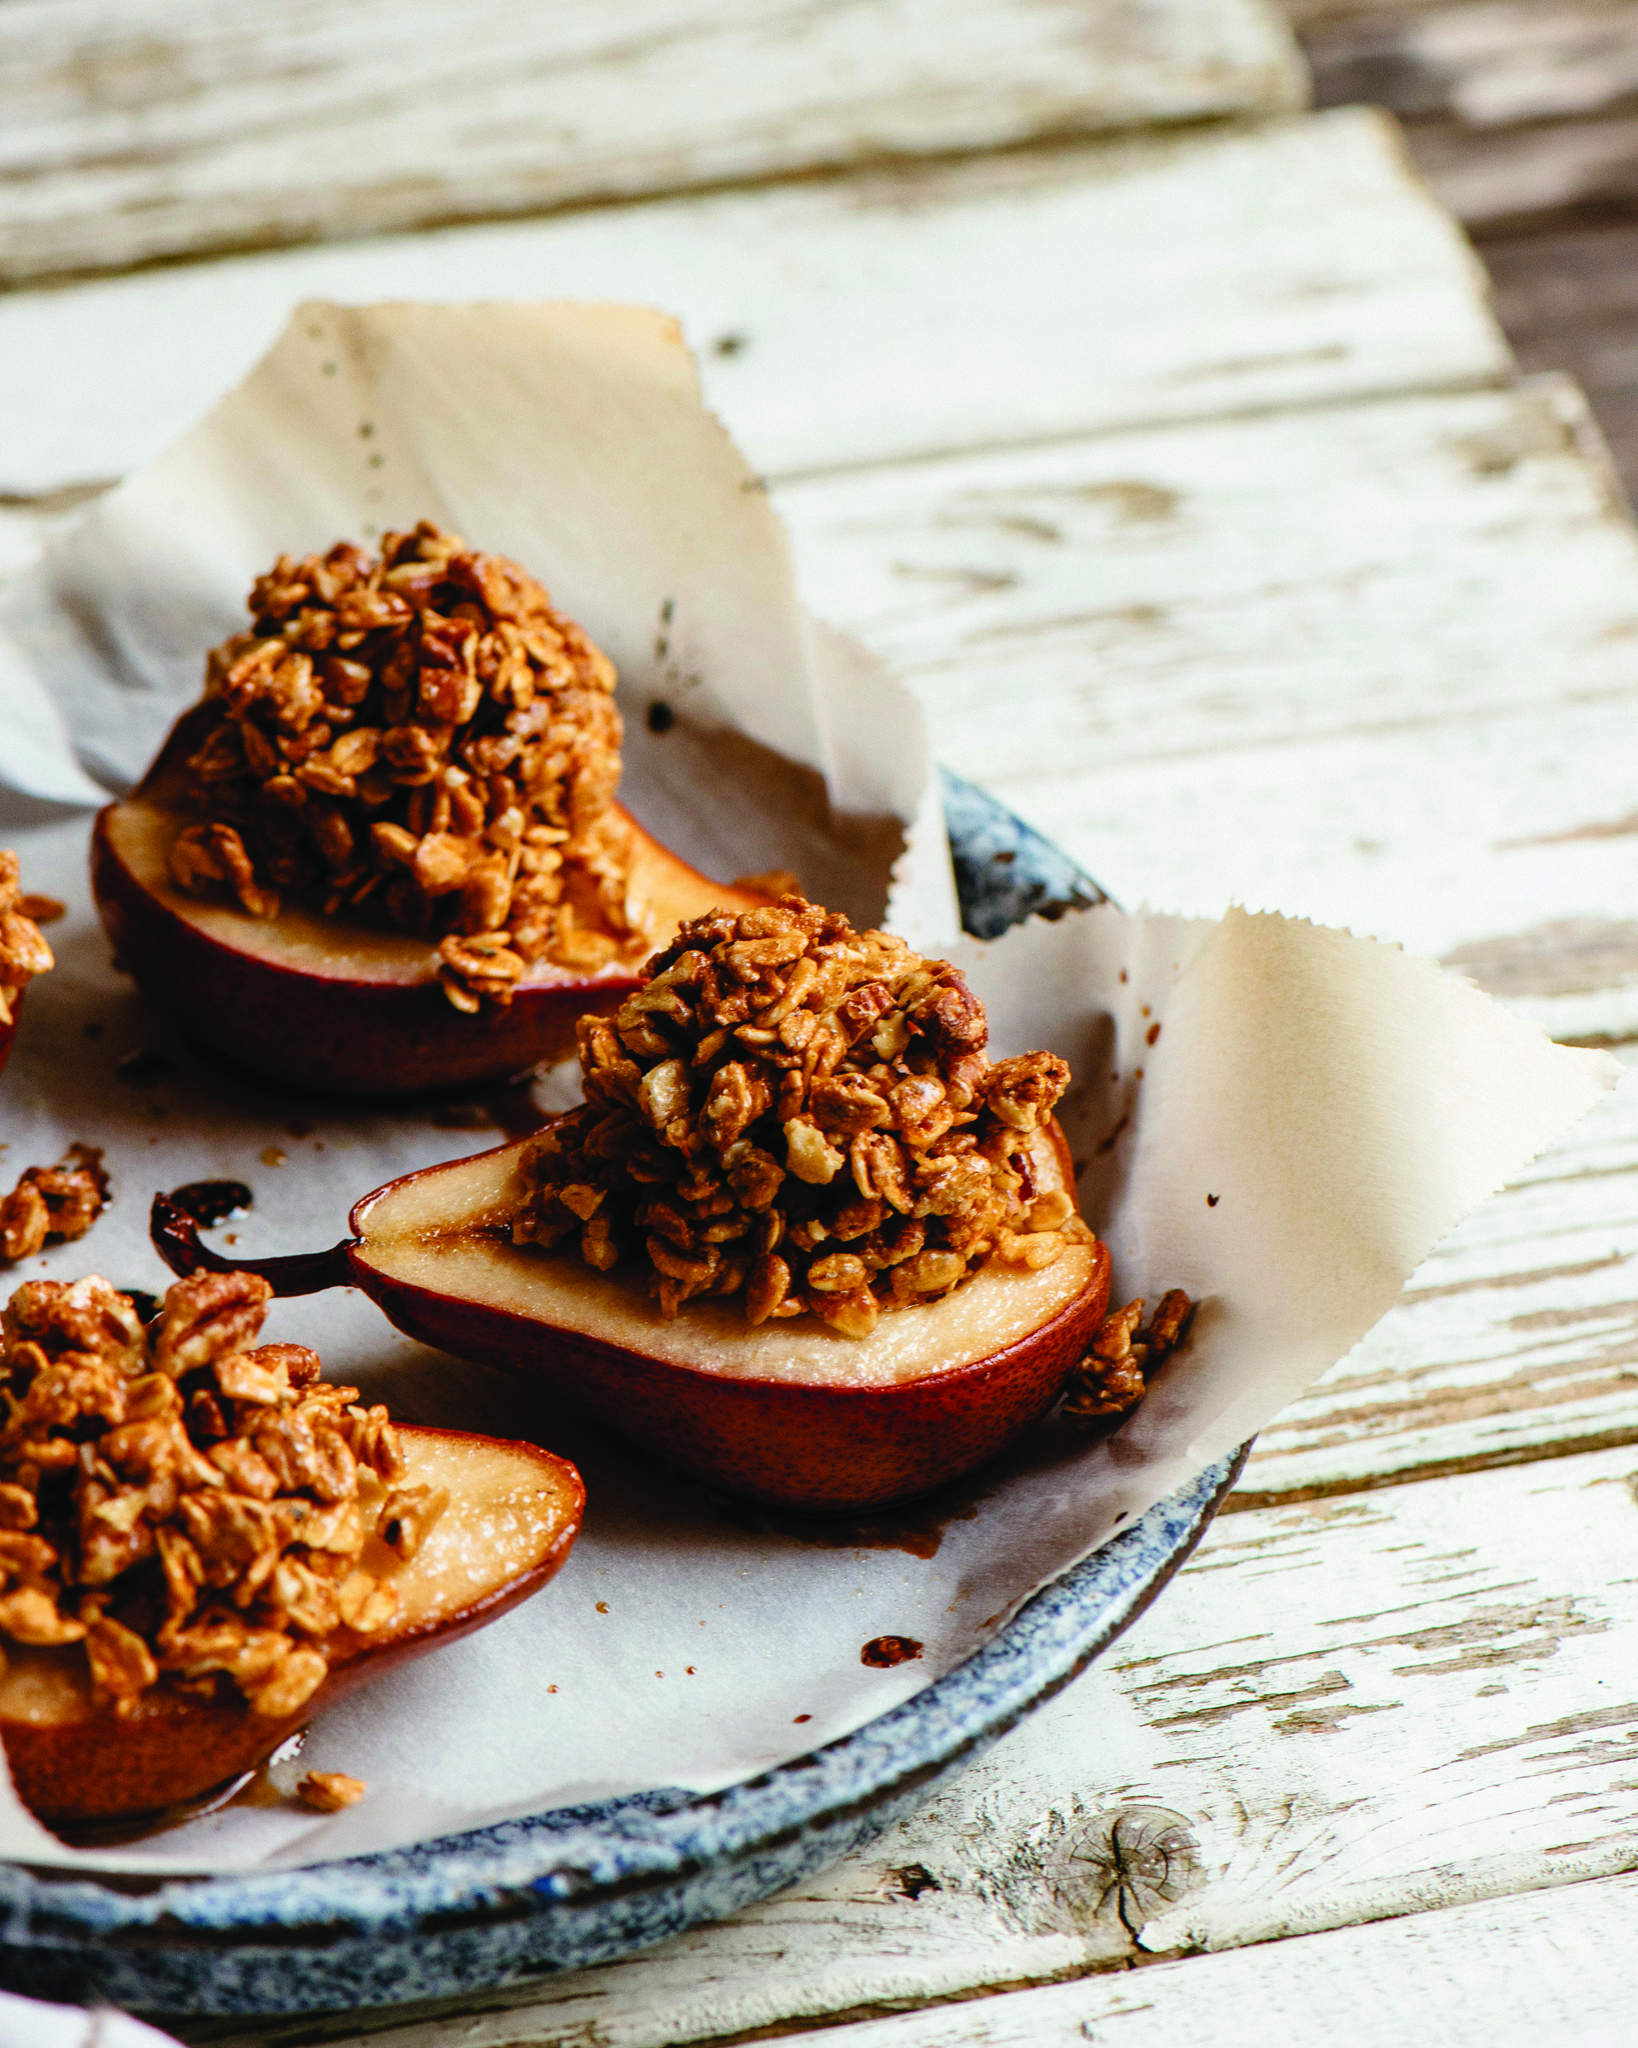 Maple-Roasted Pears with Granola